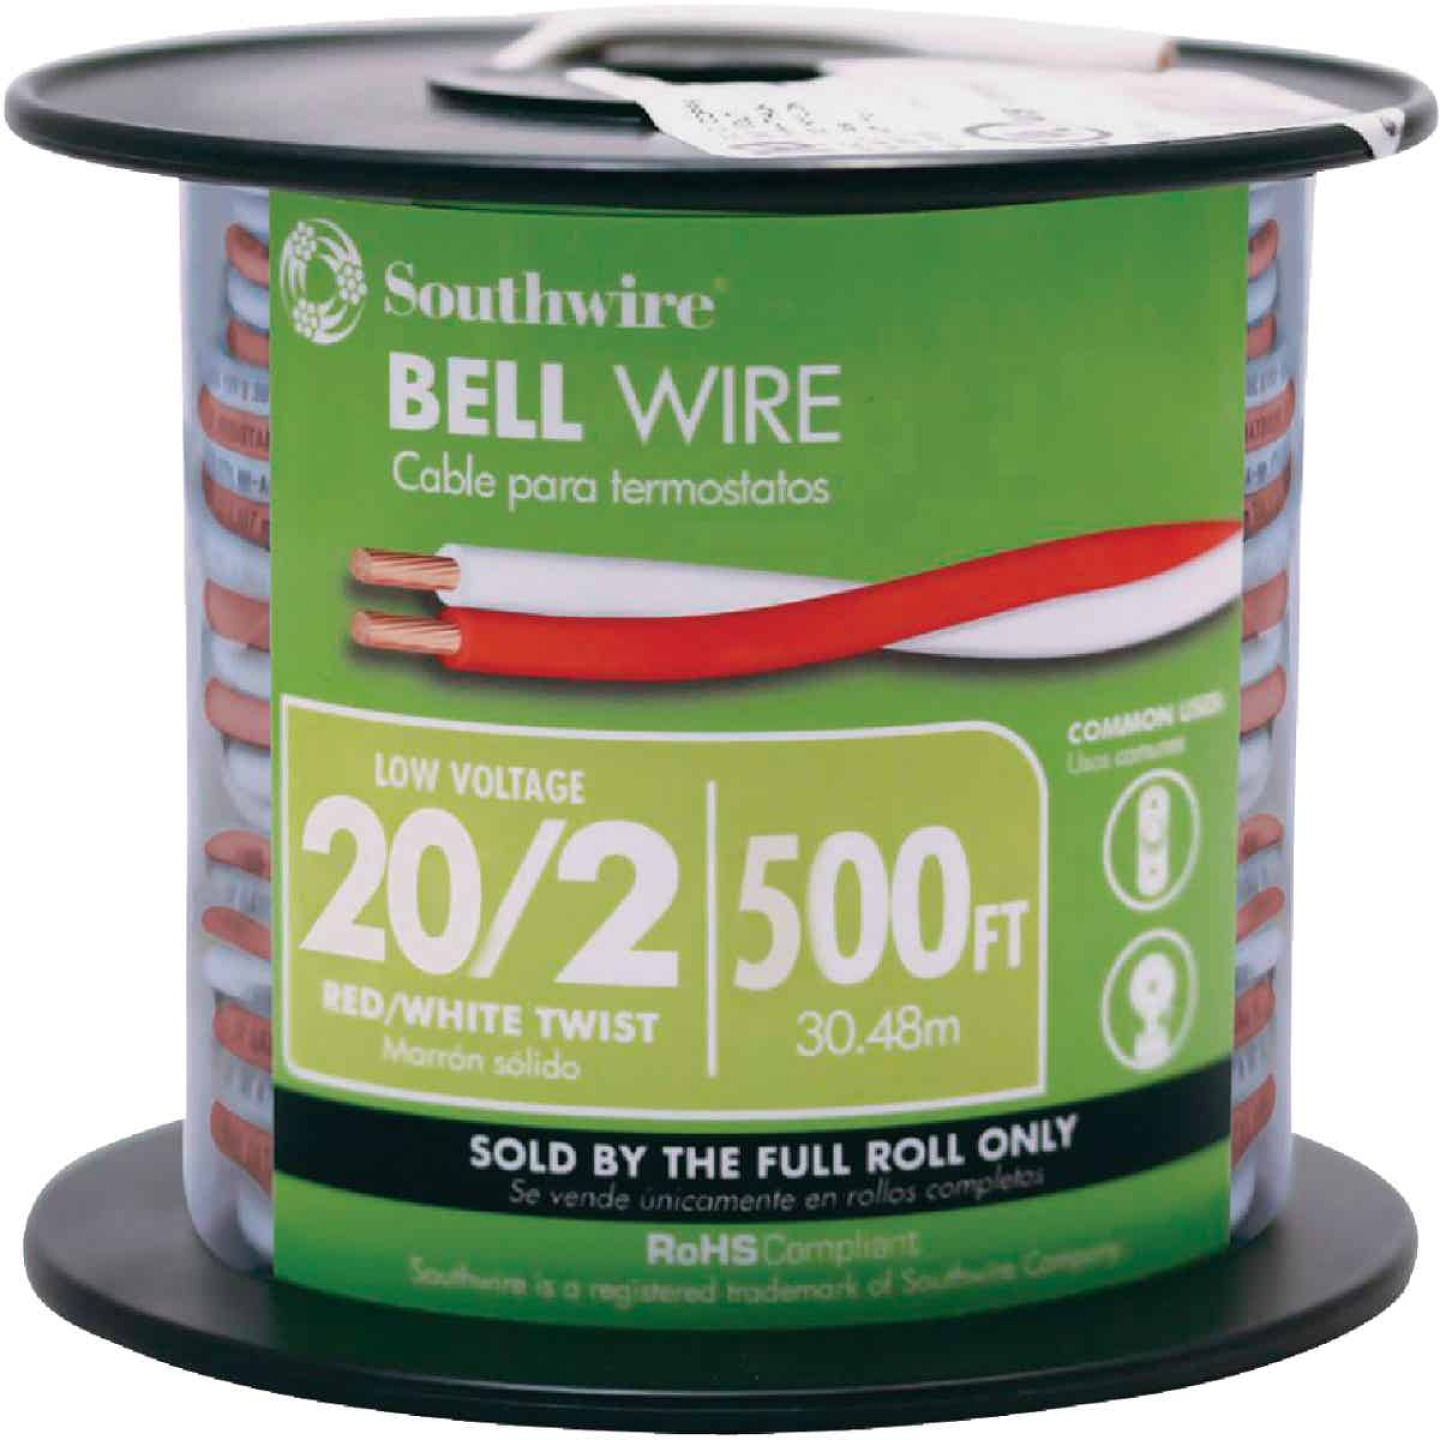 Coleman Cable 500 Ft. 20AWG Bell Wire Image 1